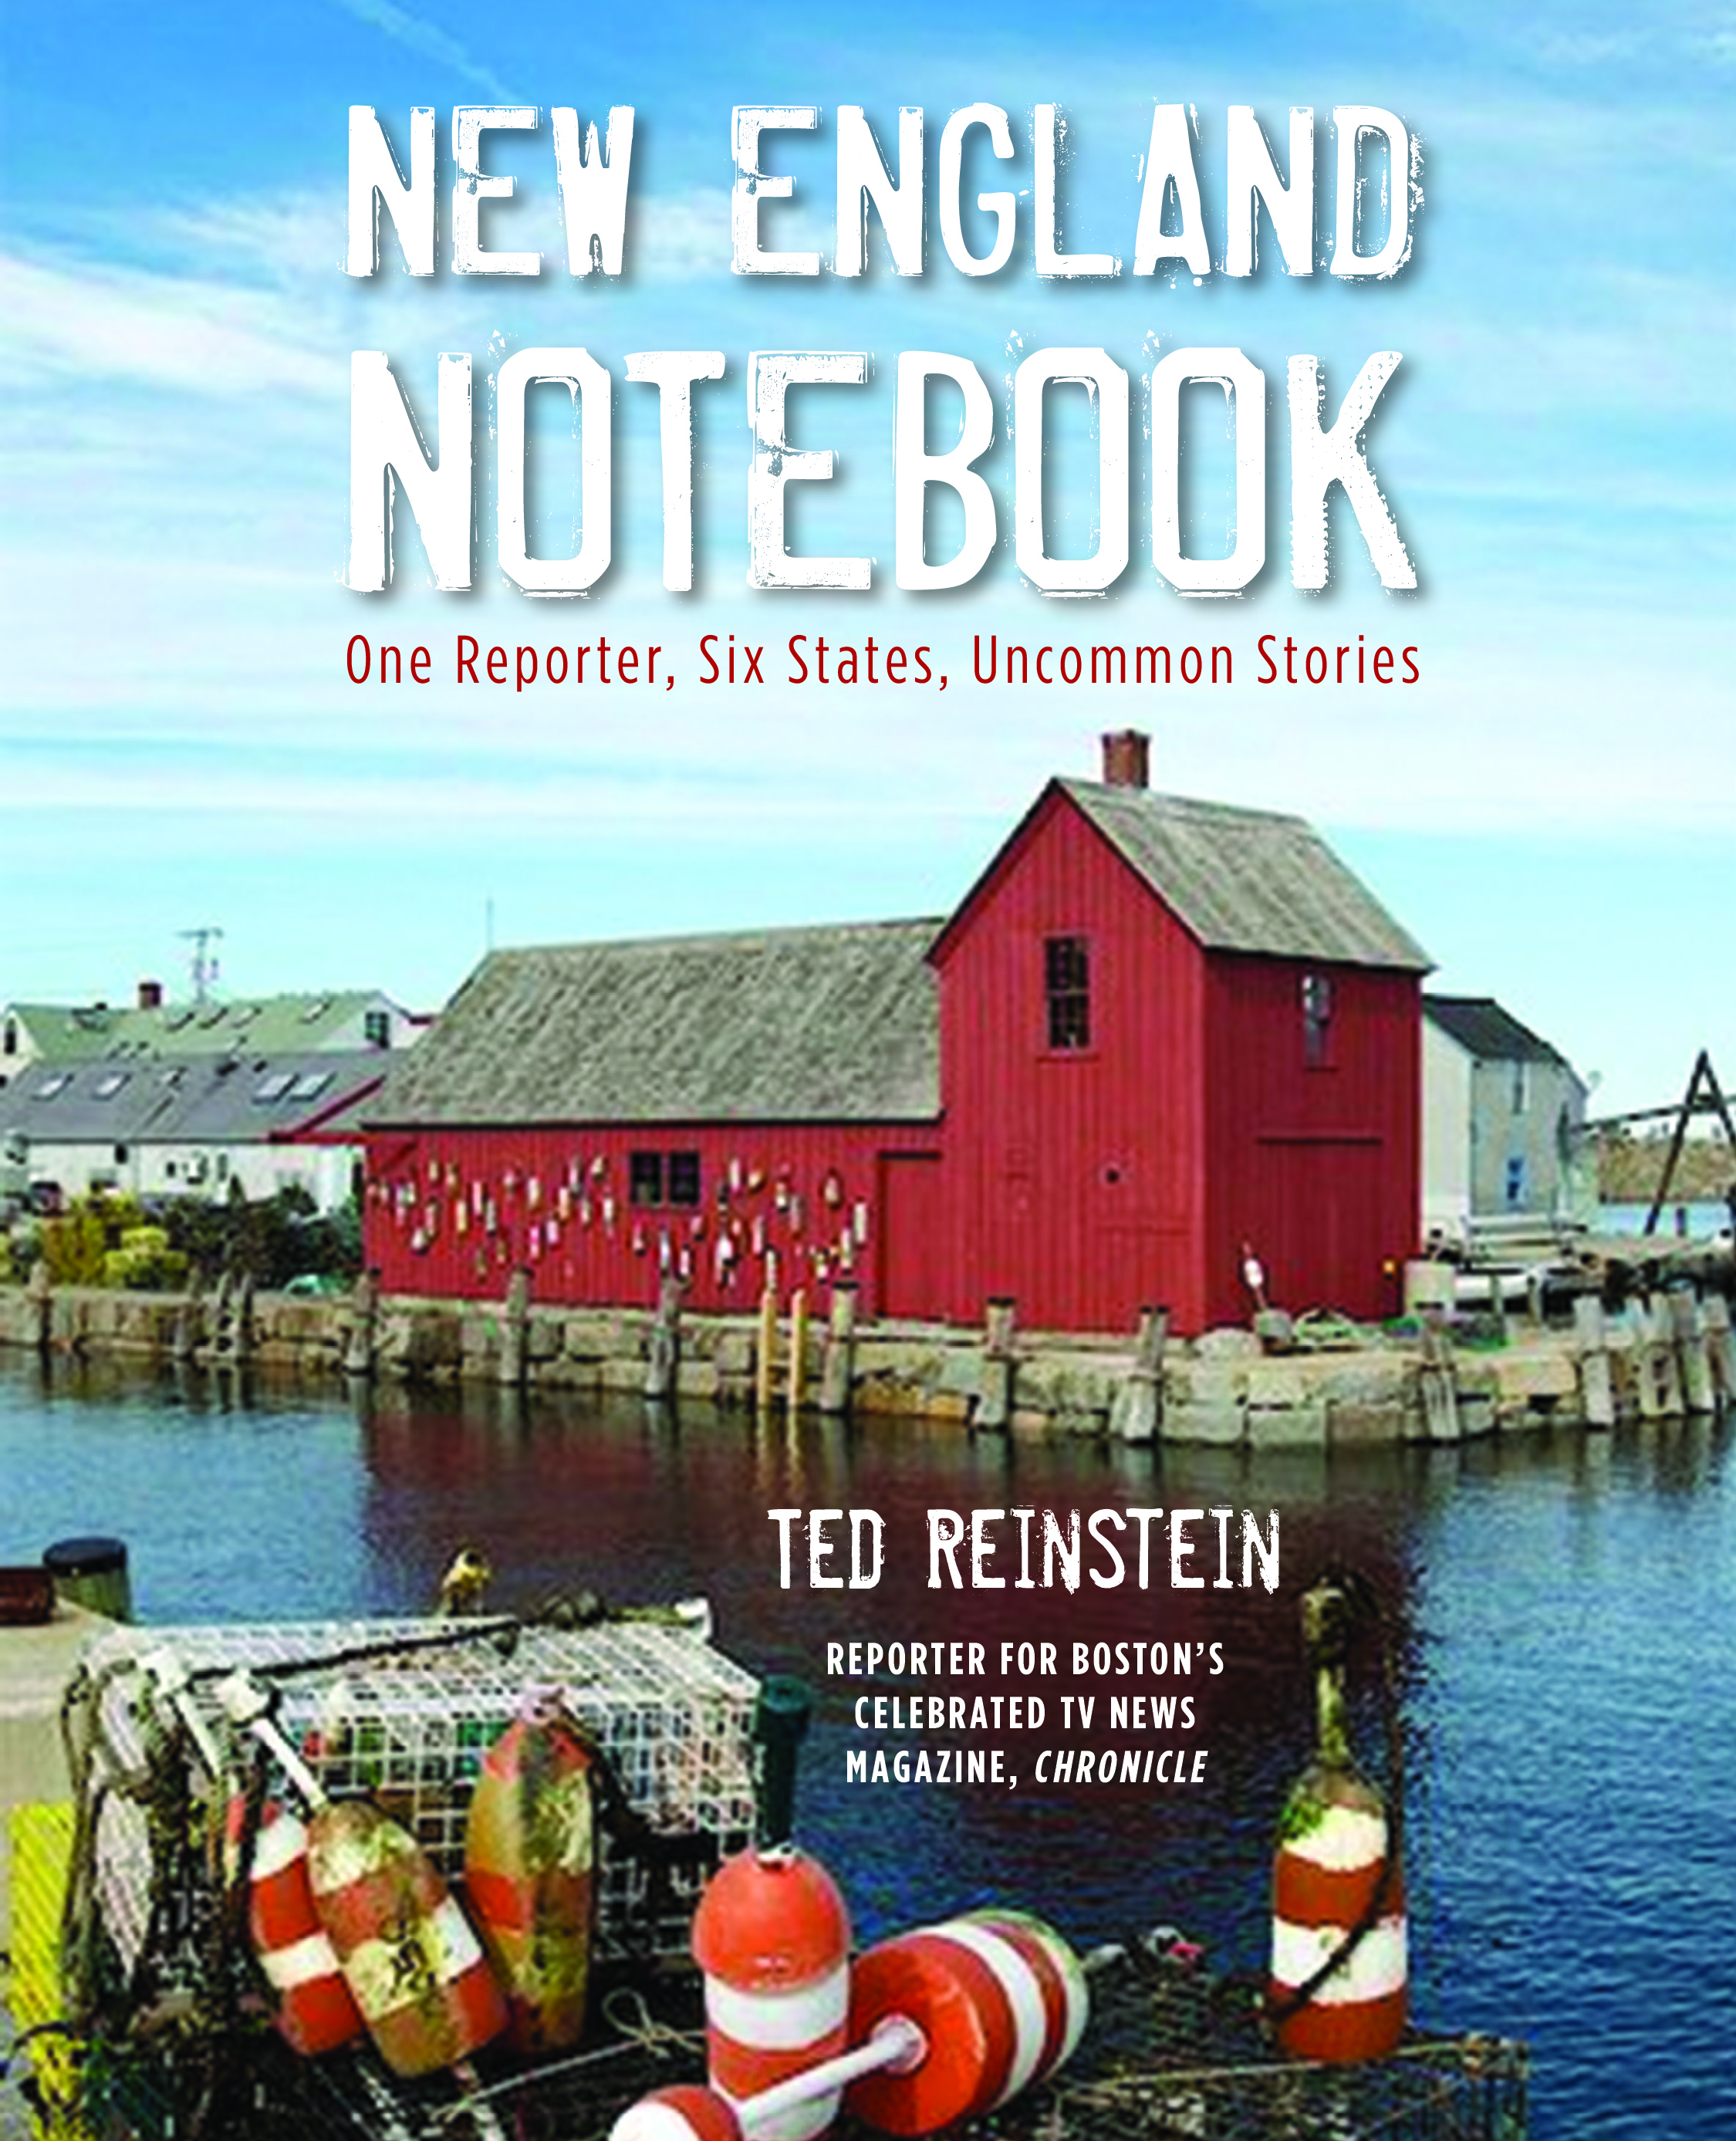 New England Notebook cover